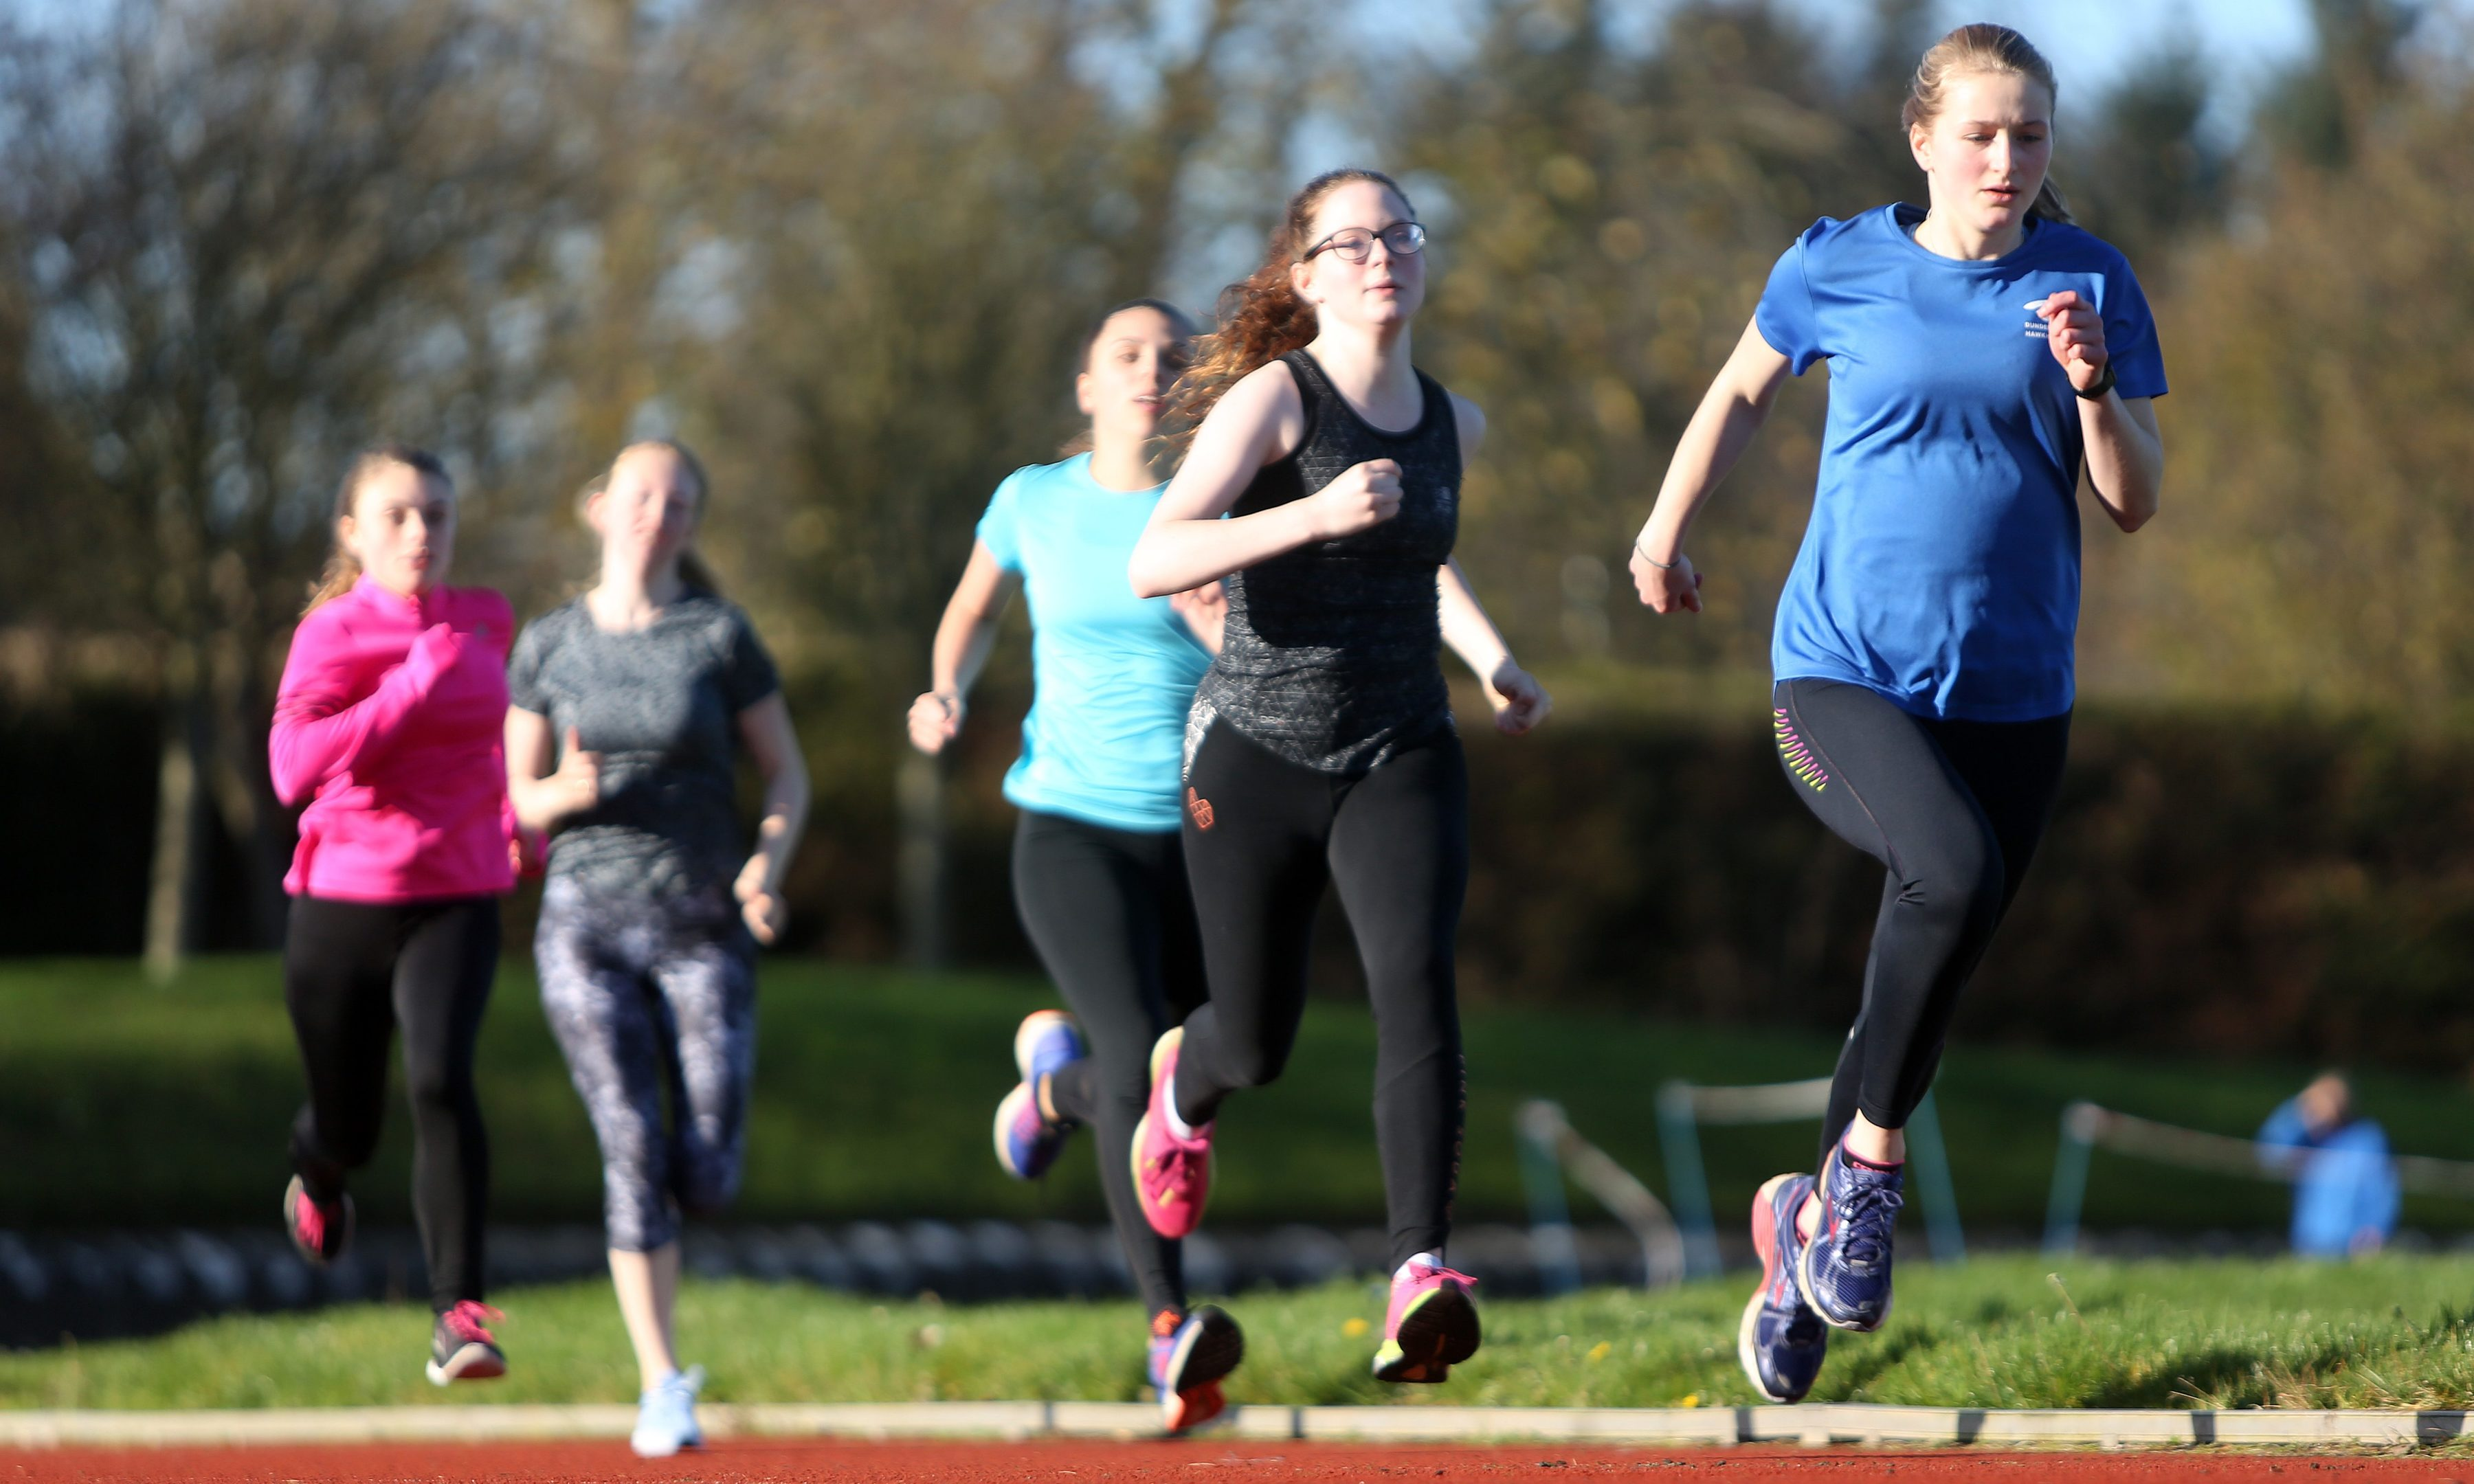 A Hawkhill Harriers youth training session at Caird Park.